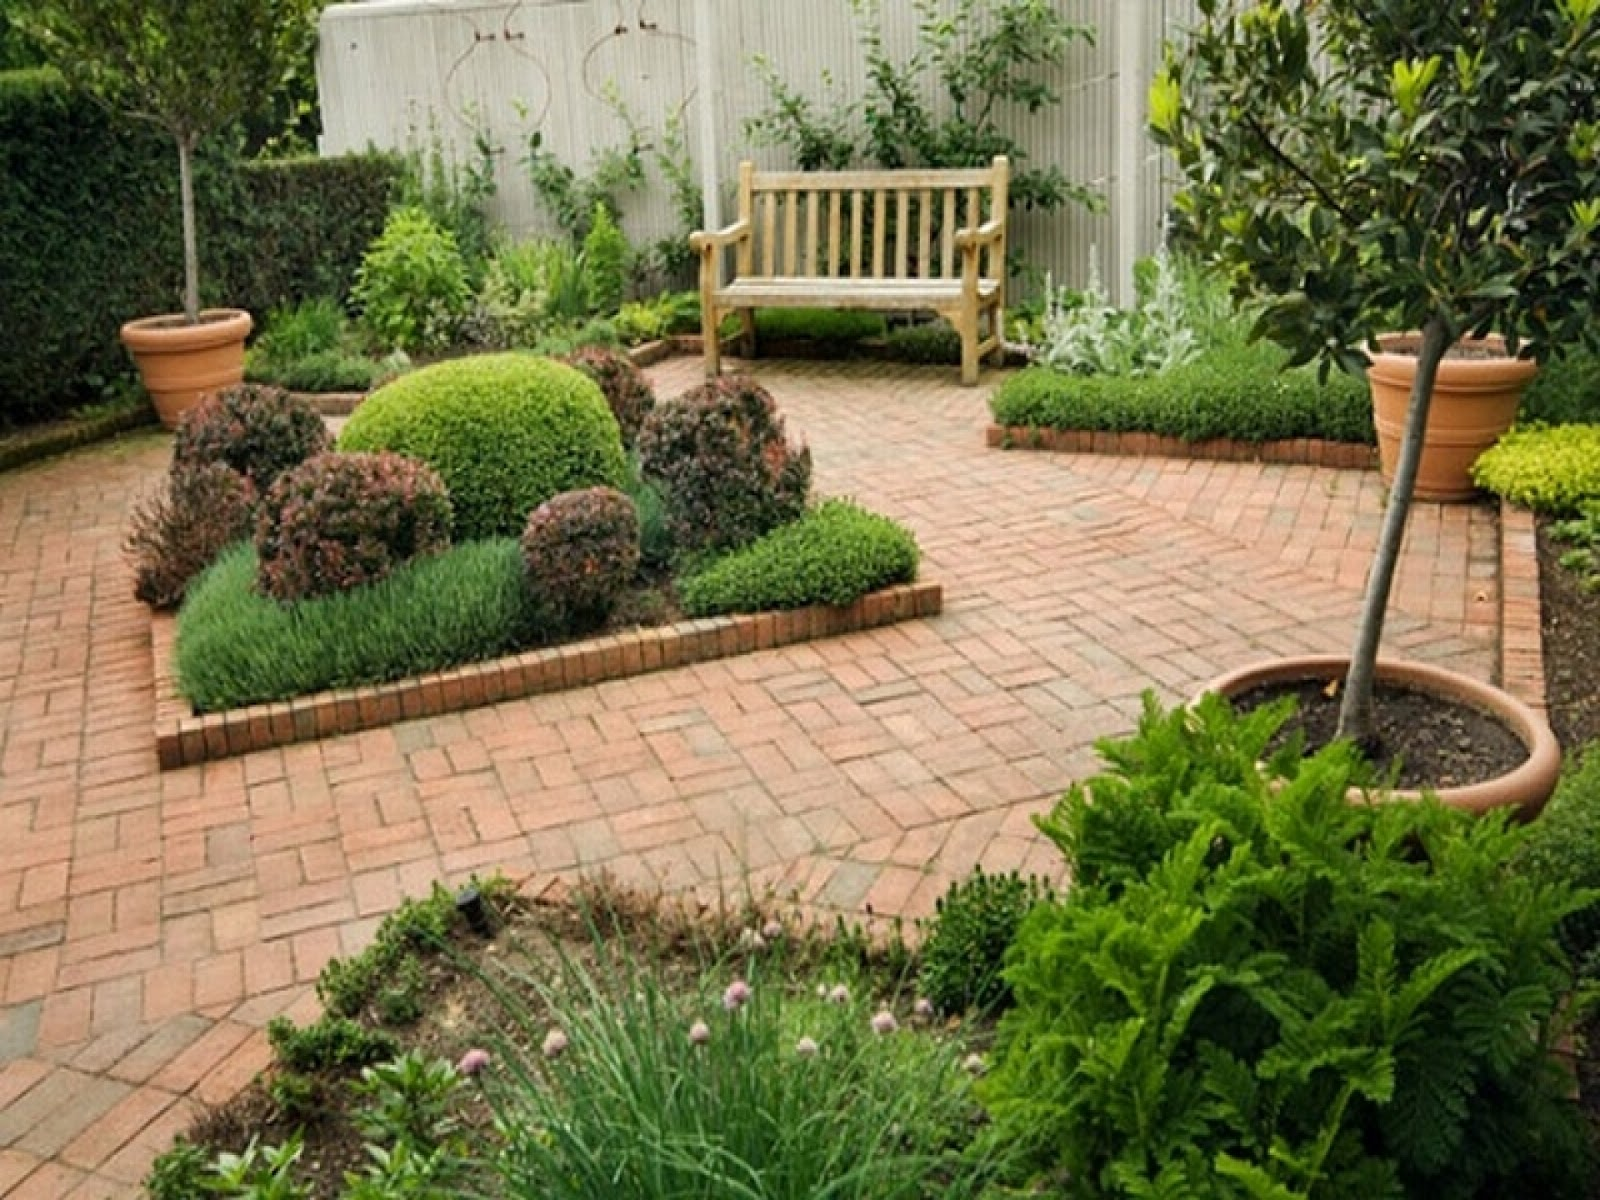 Small garden design ideas cool little garden for Small backyard garden ideas